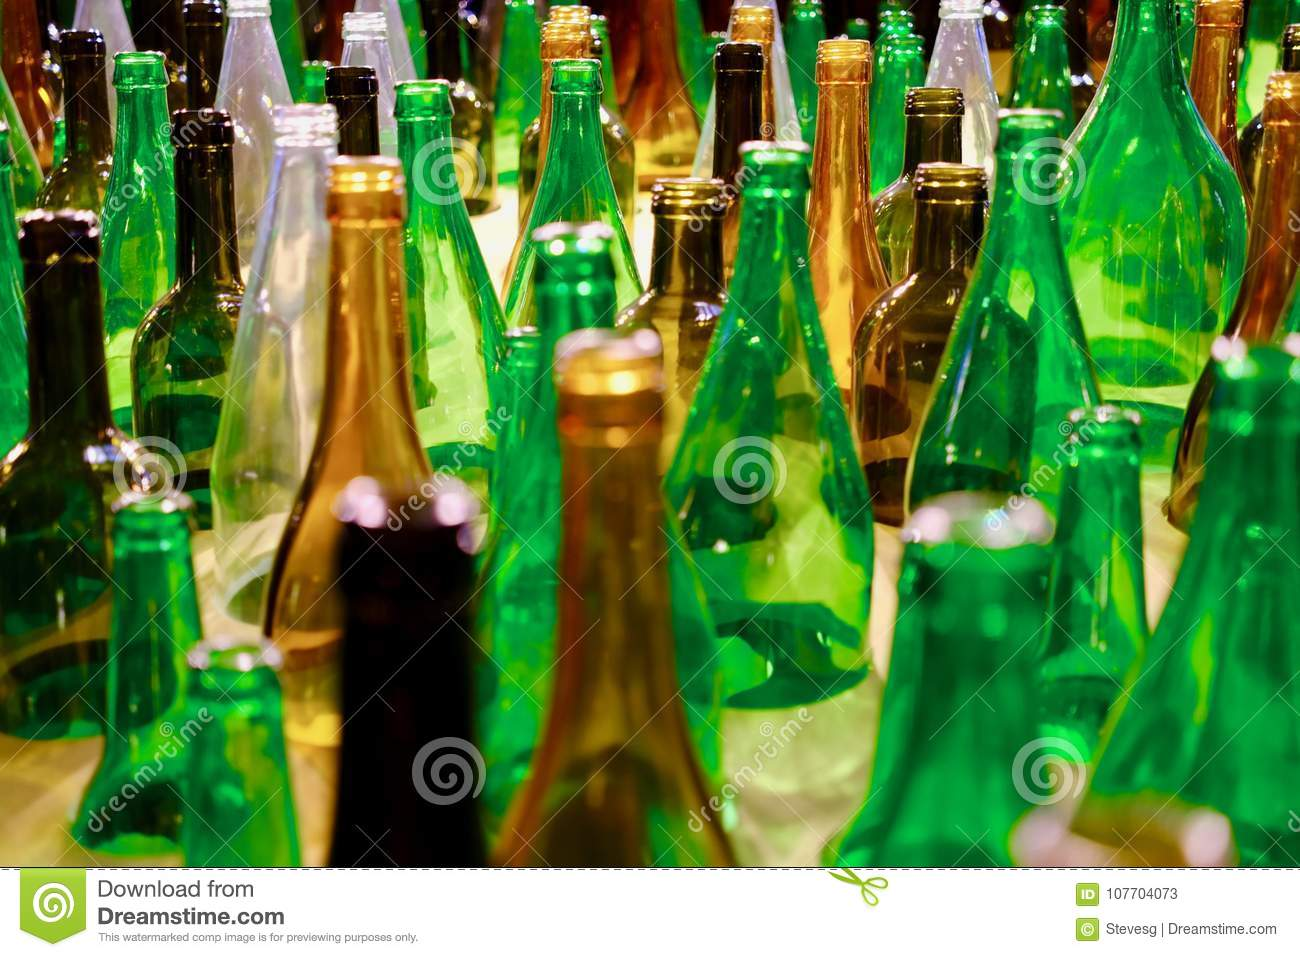 Colored glass bottles stock image. Image of recycle - 107704073